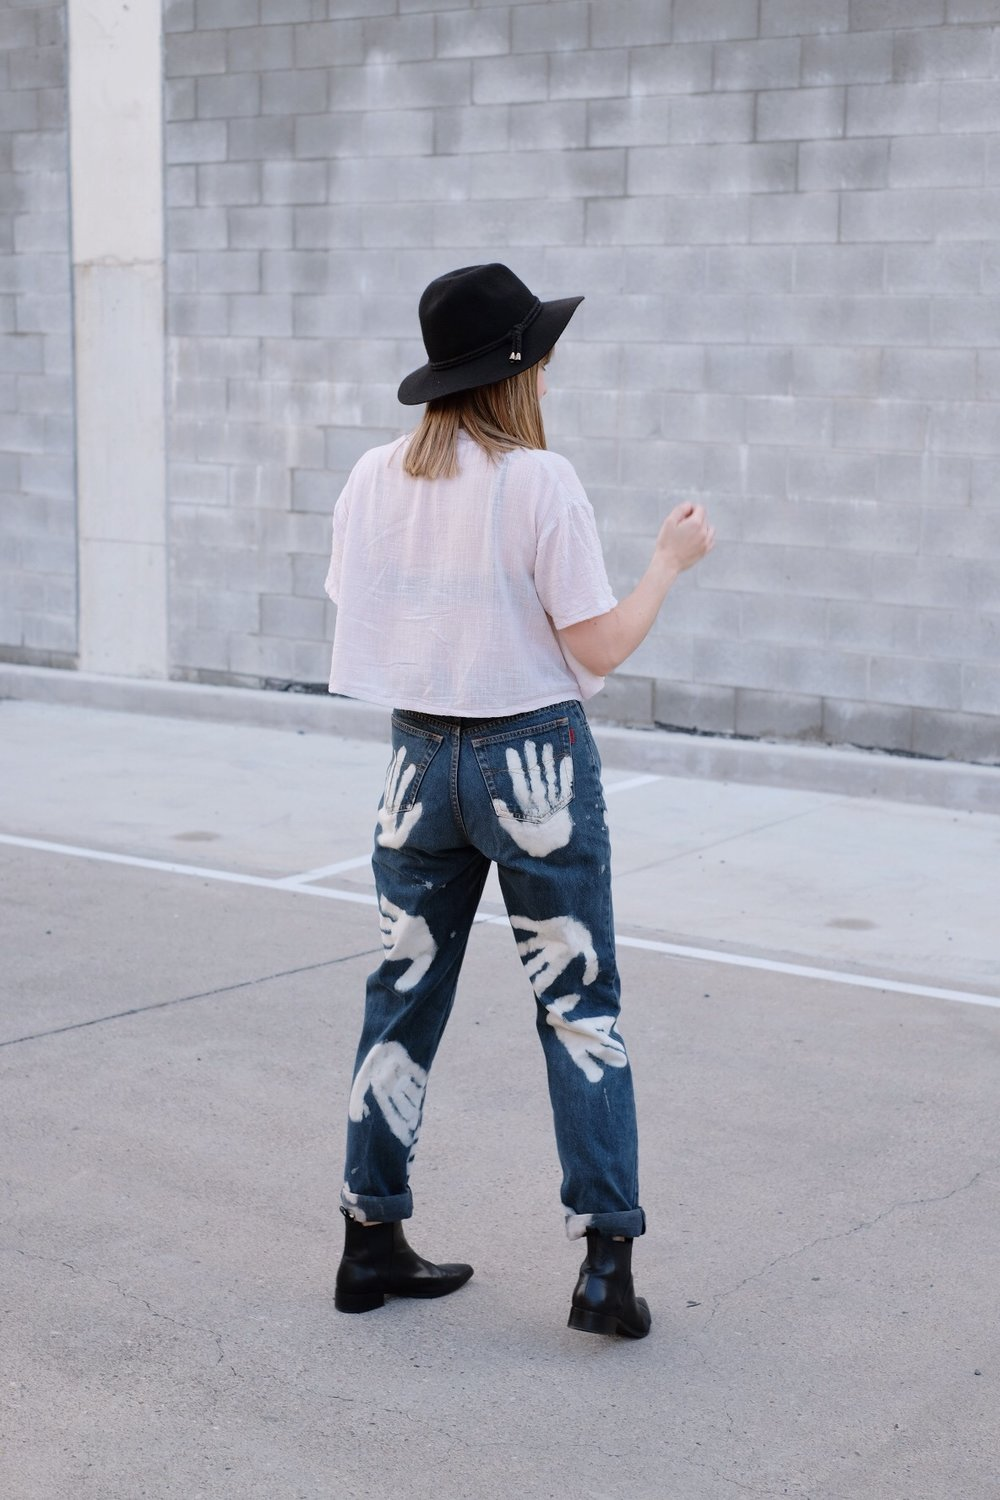 Unique hand printed jeans // A Week Of Colorful & Creative Slow Fashion Outfits With Leah Musch From Un-Material Girl on The Good Trade